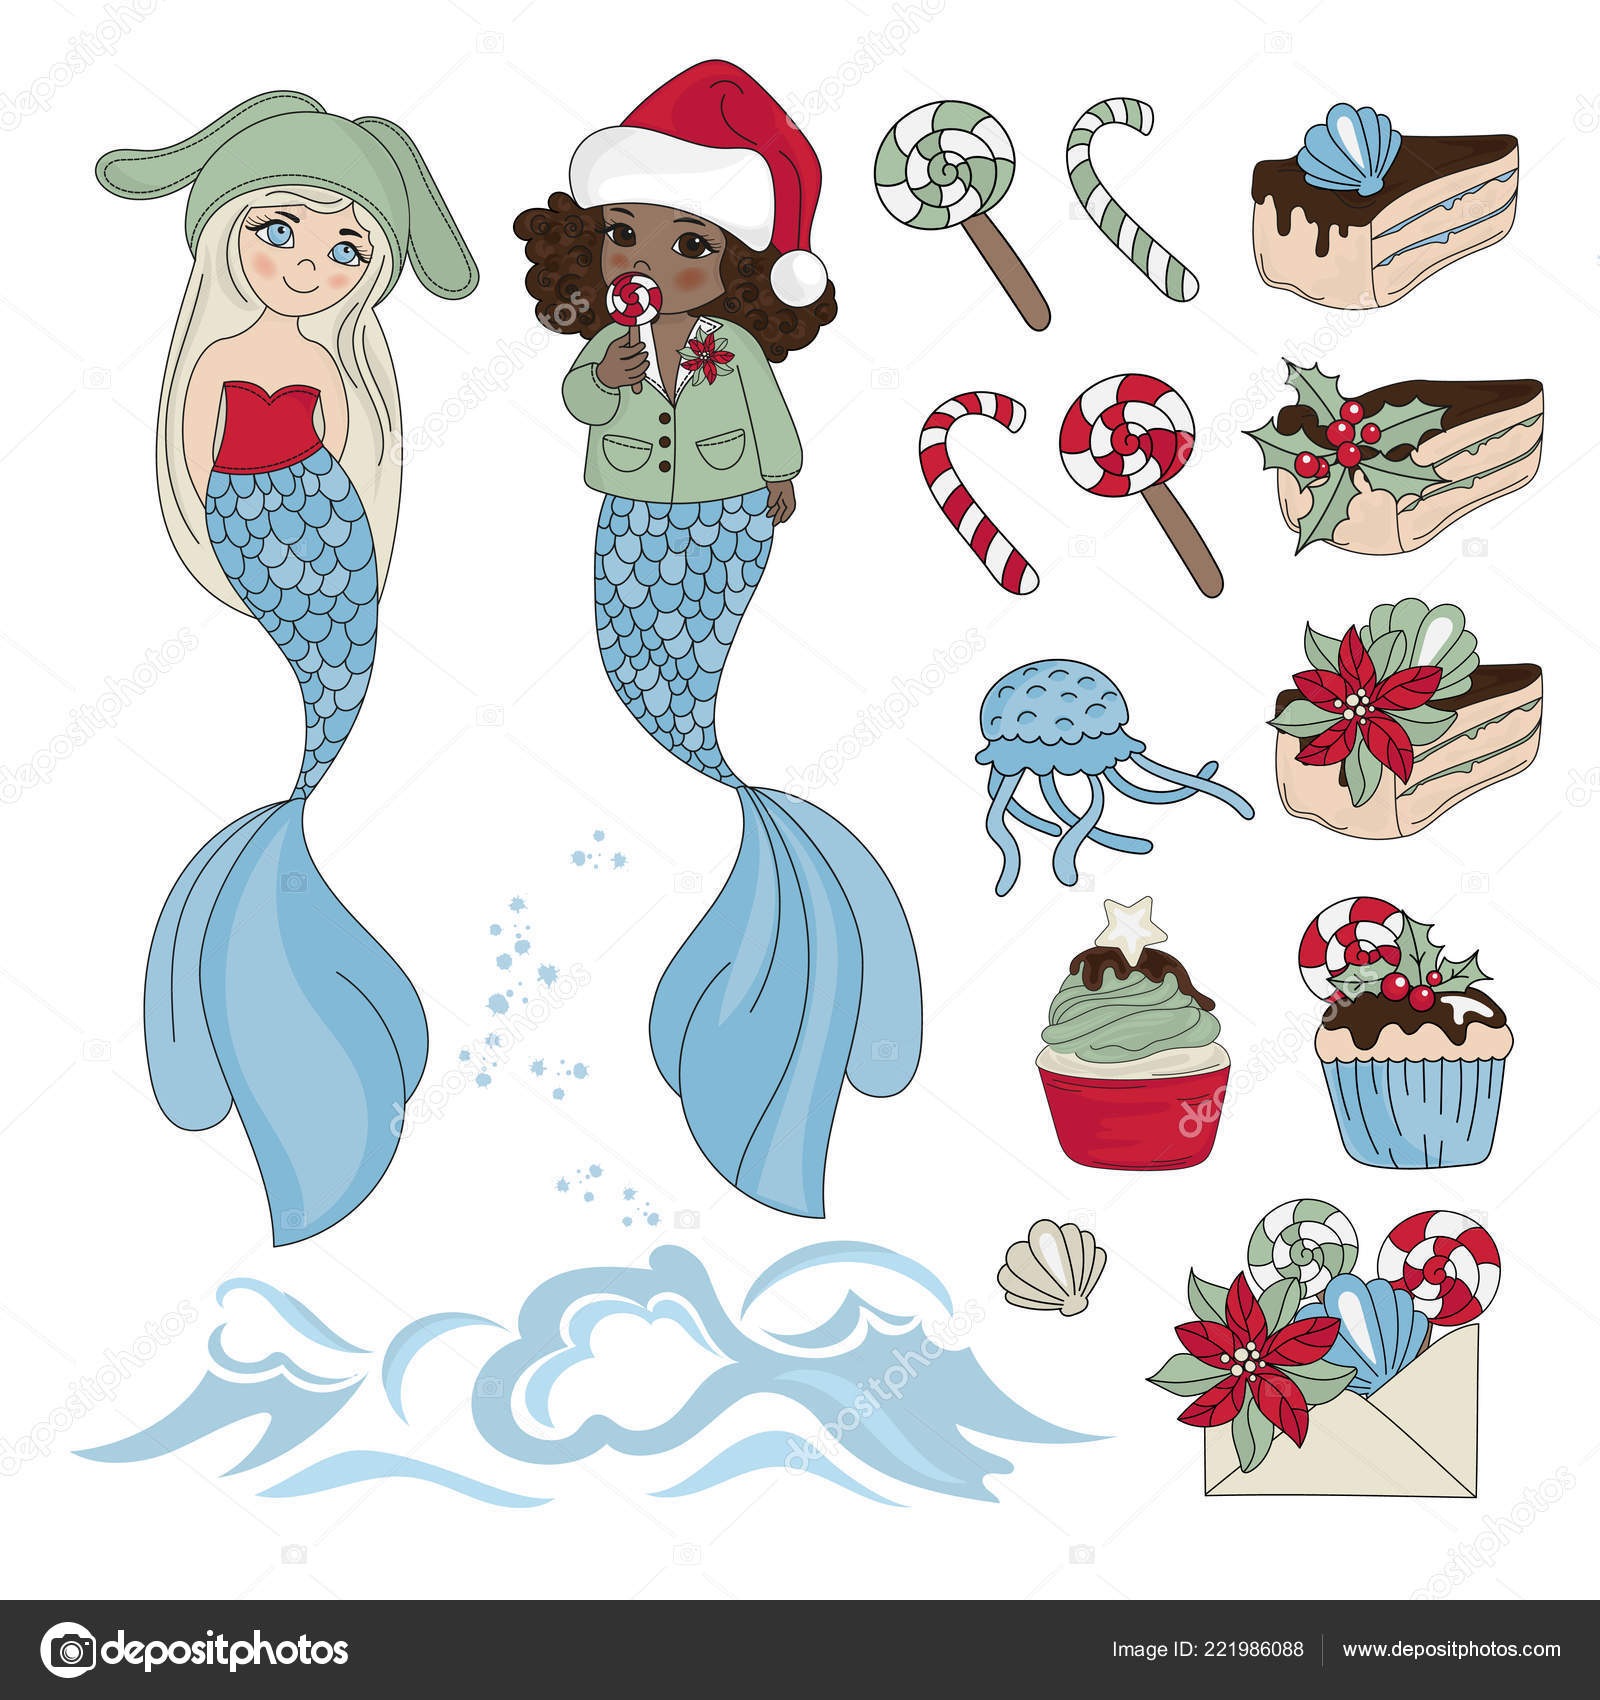 MERMAID YUMMY New Year Color Vector Illustration Set For Birthday And Party Wall Decorations Scrapbooking Baby Book Photo Albums Card Print